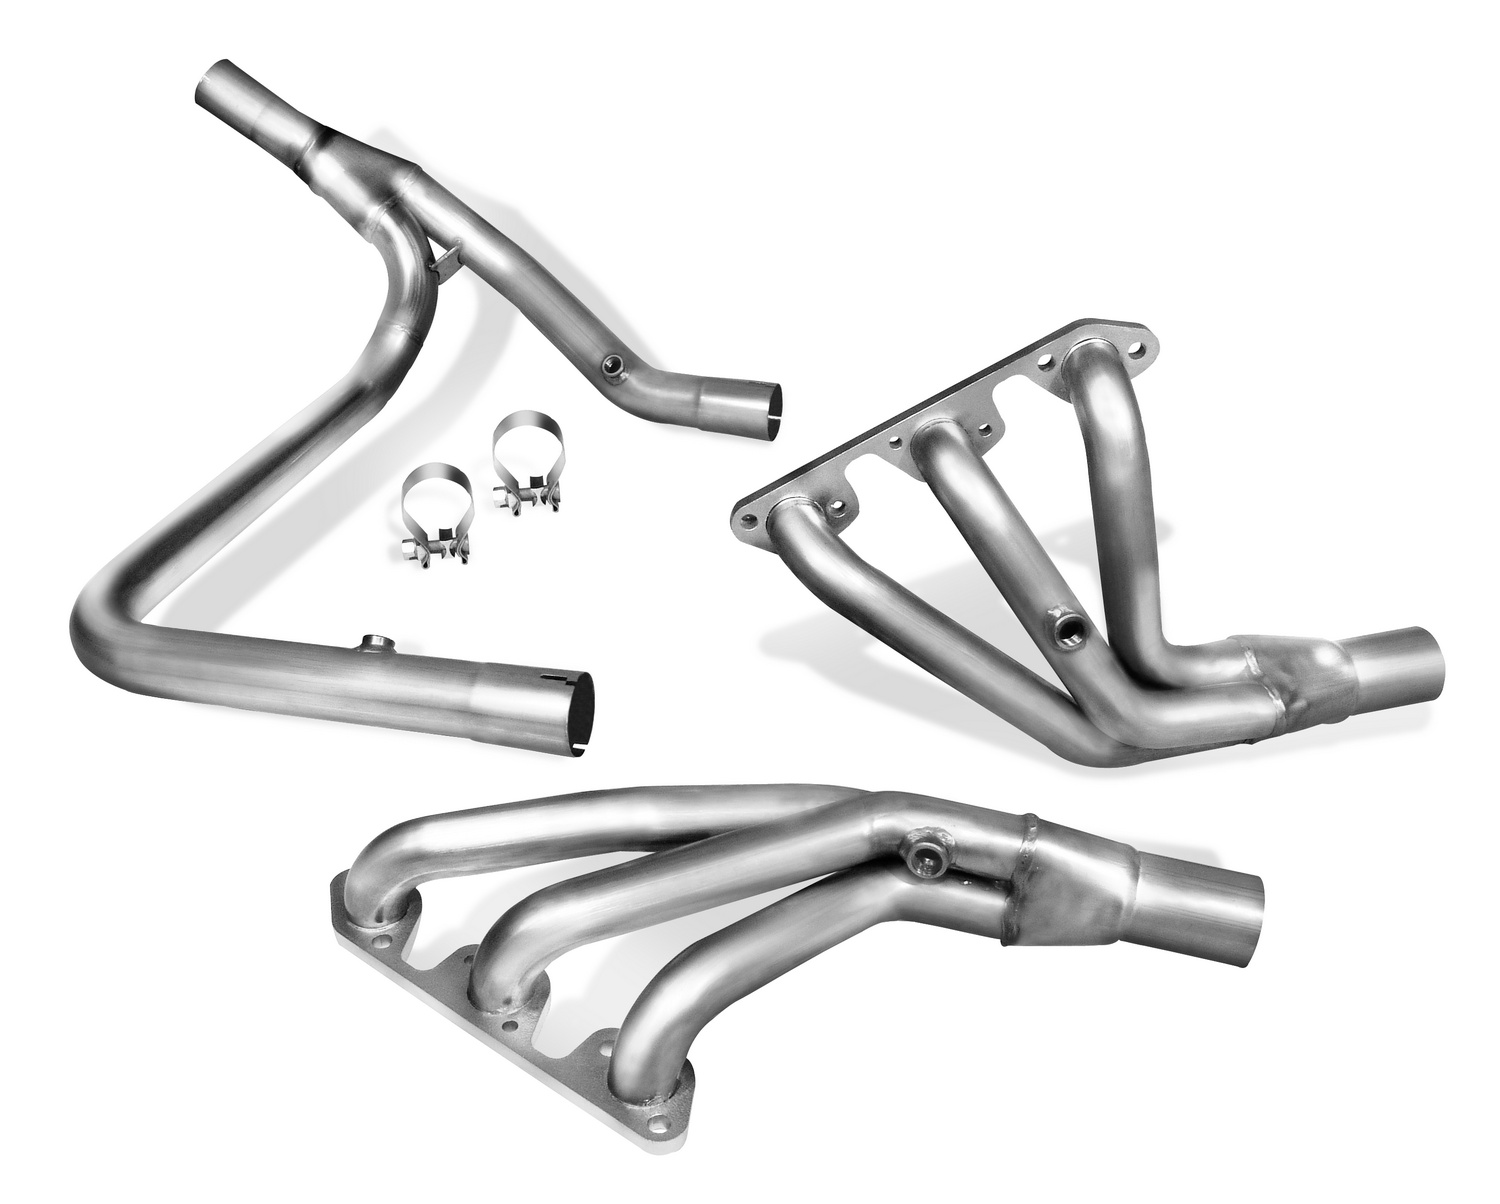 Borla Exhaust Header (17251)